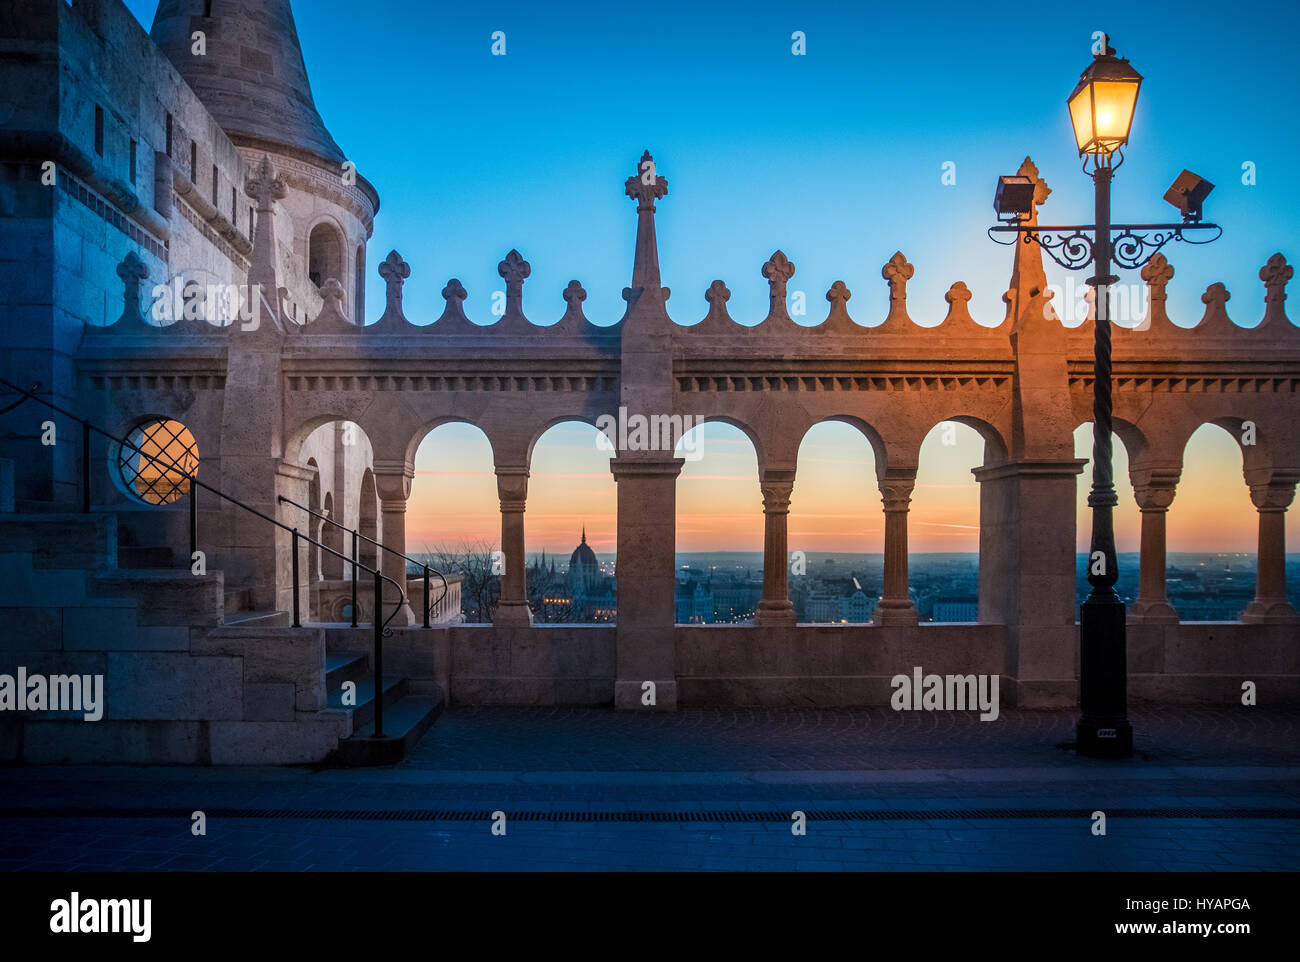 Fishermans bastion, a major tourist atraction in Budapest, Hungary at dawn. - Stock Image